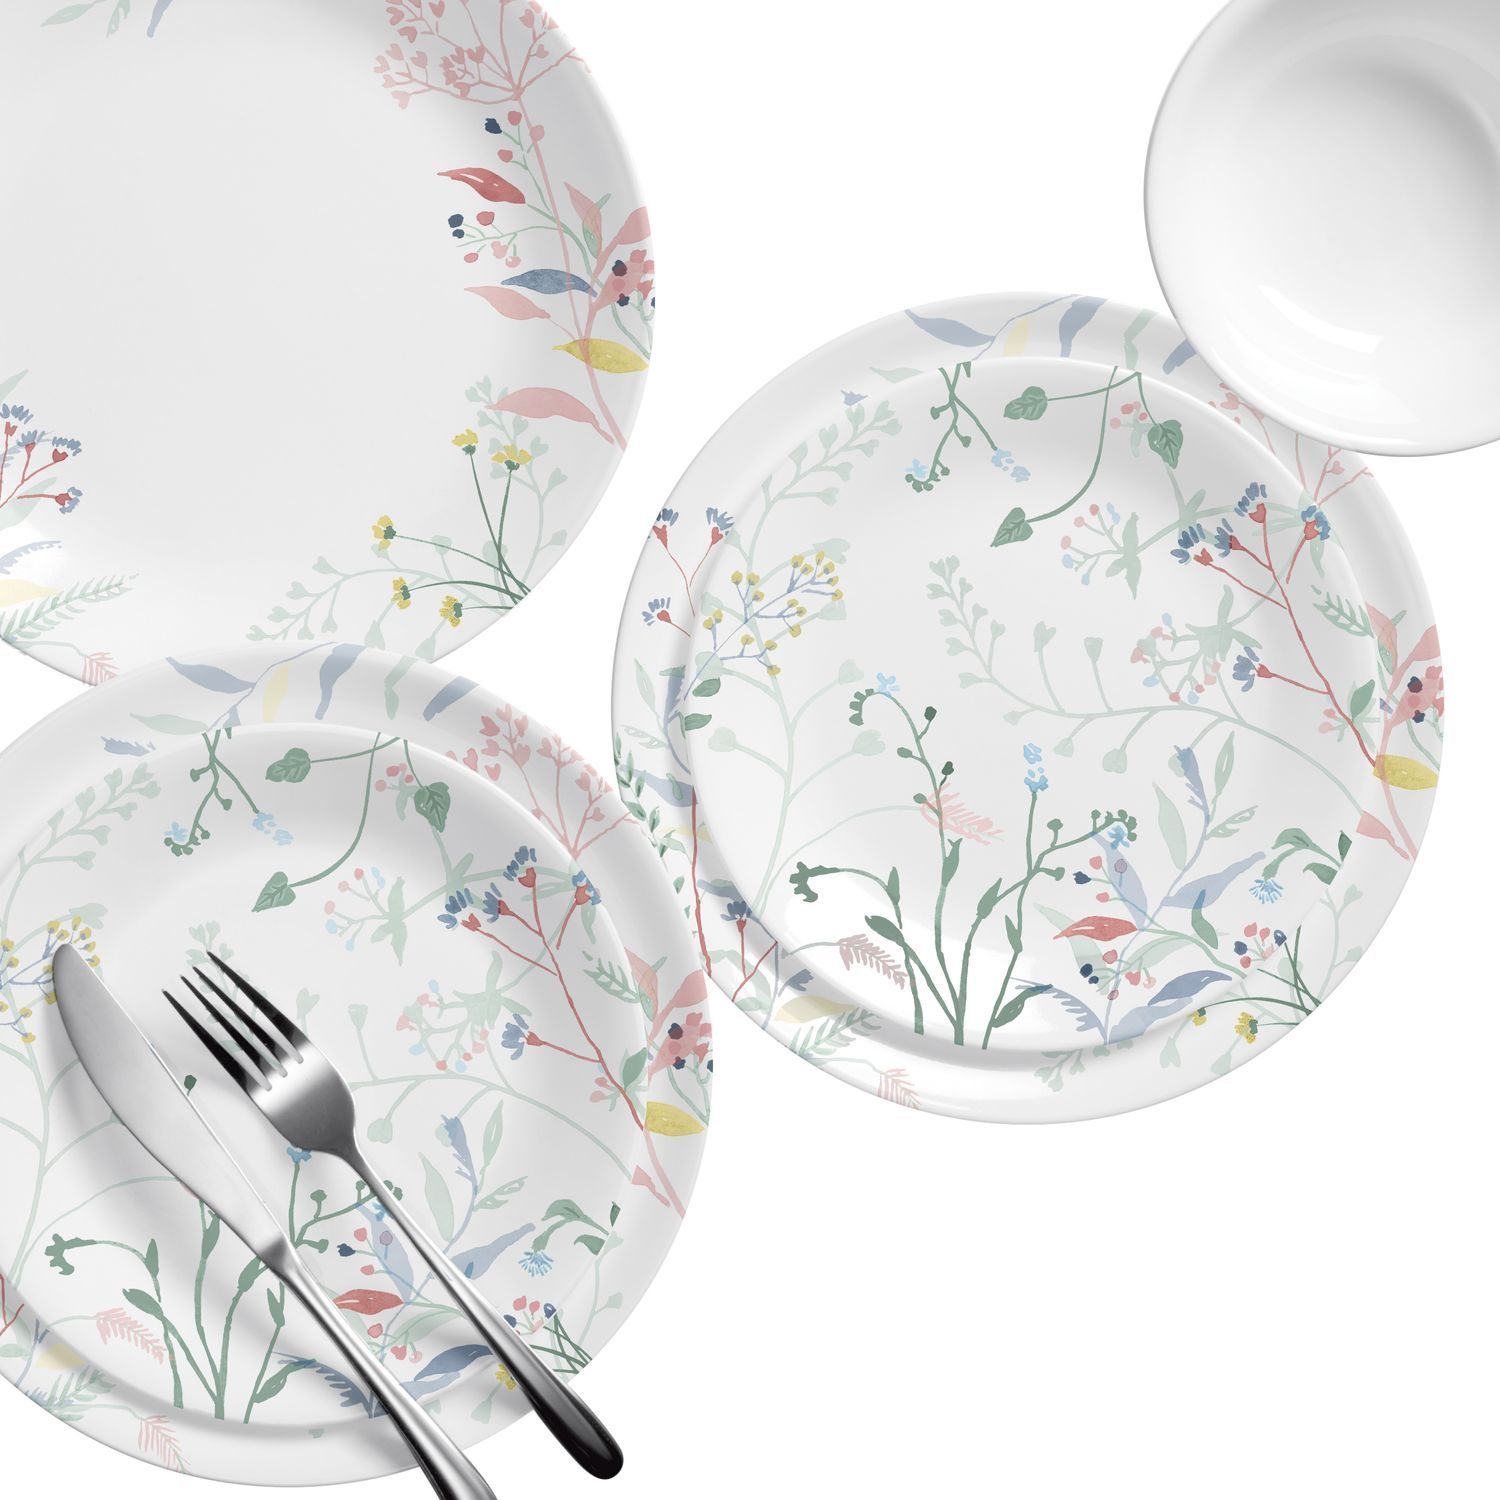 Corelle Boutique Monteverde 12 Pc Dinnerware Setboutique